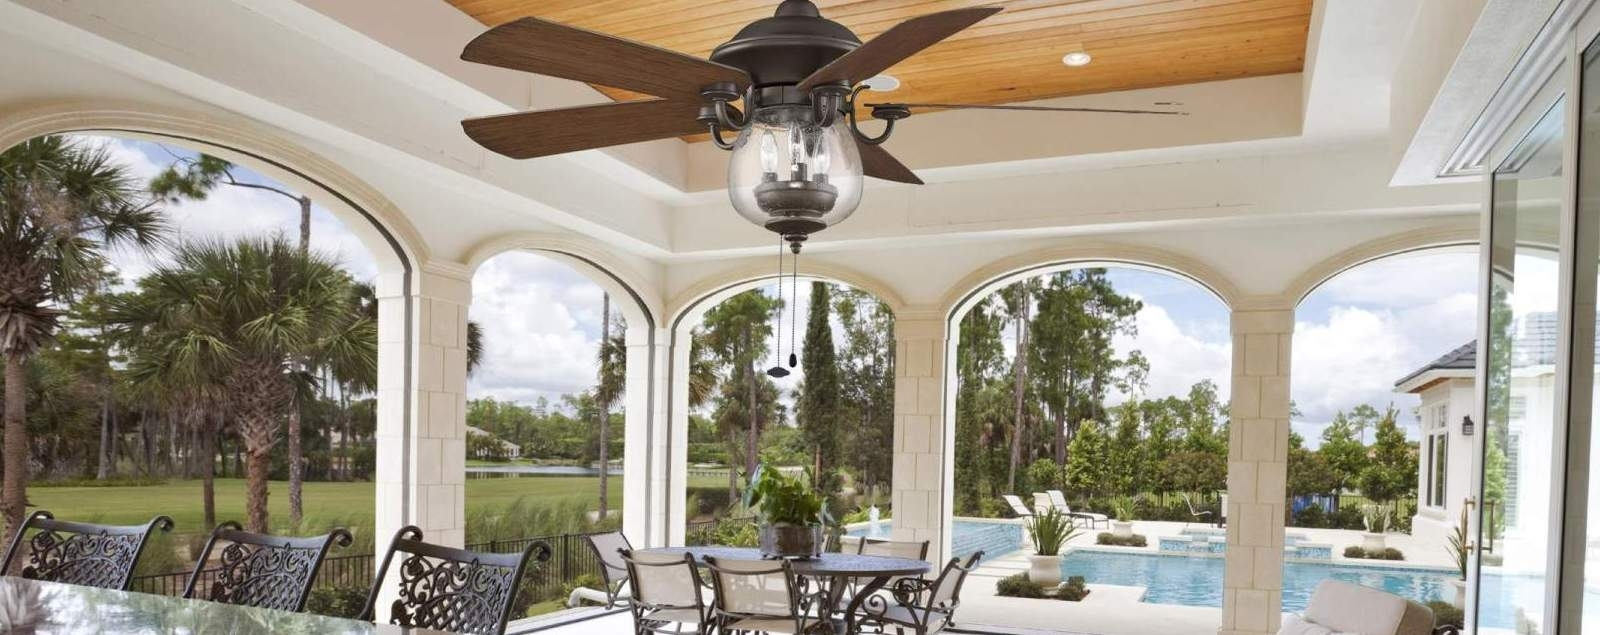 2018 High Output Outdoor Ceiling Fans Throughout Outdoor Ceiling Fans – Shop Wet, Dry, And Damp Rated Outdoor Fans (Gallery 12 of 20)